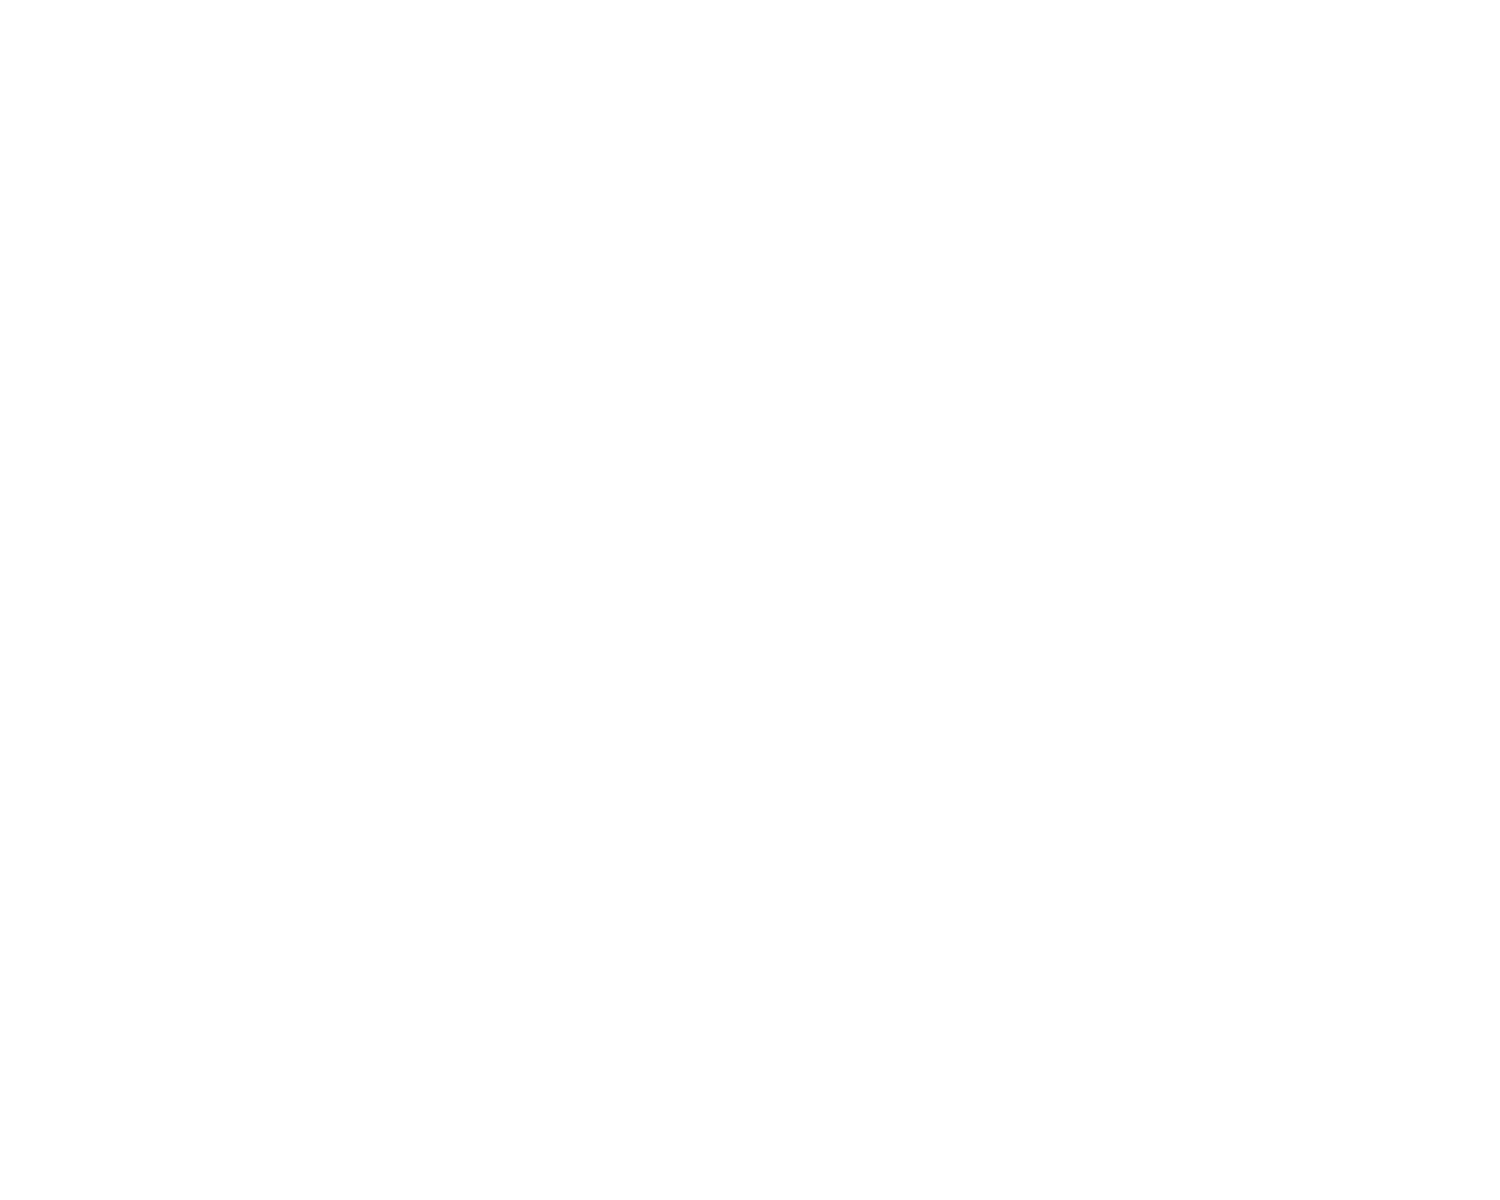 Central Texas Floors